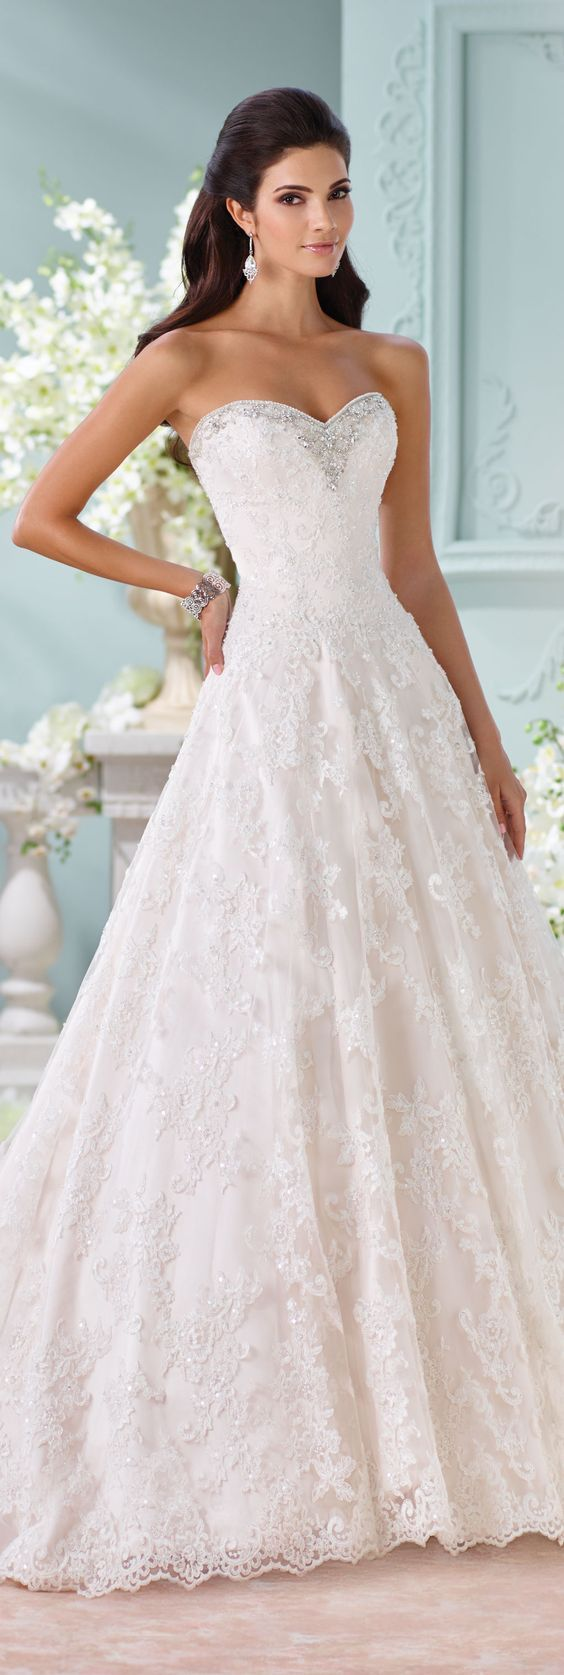 David Tutera for Mon Cheri Spring 2016 Wedding Gown